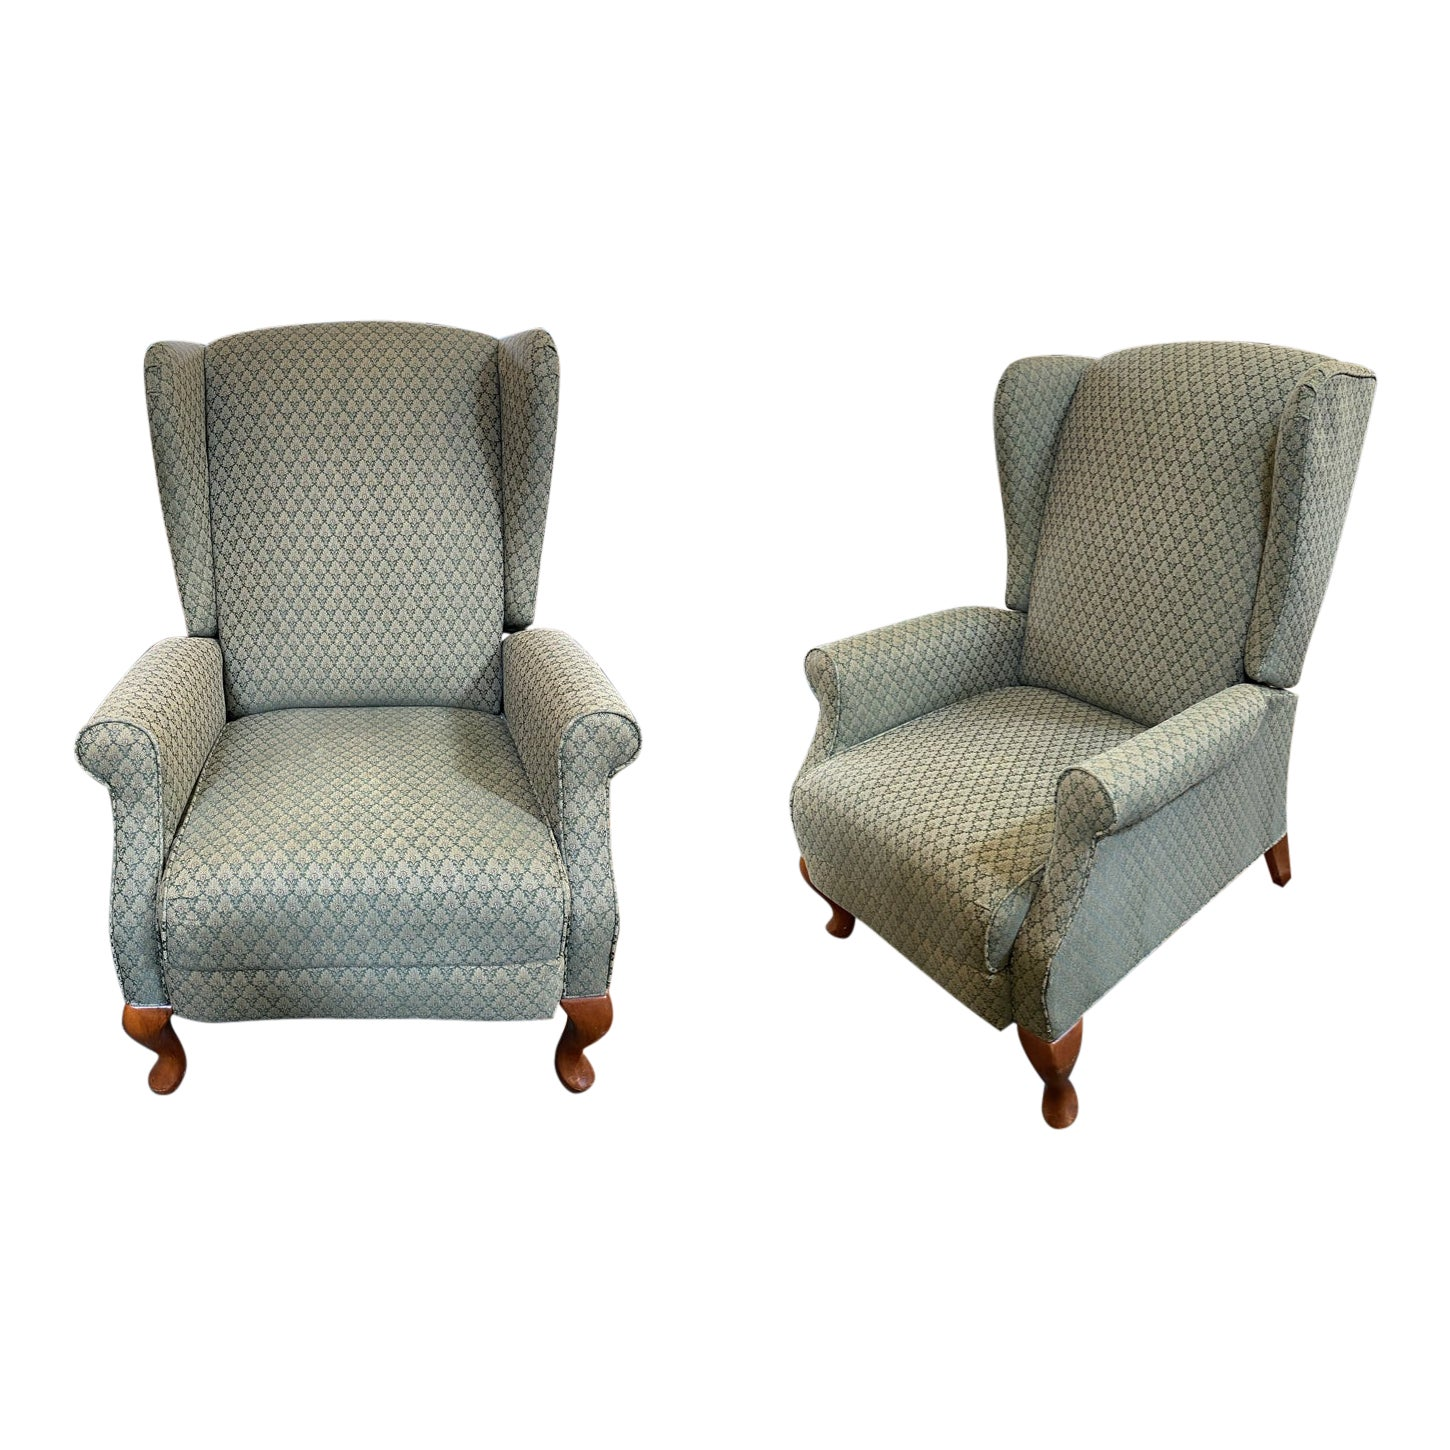 Lazy Boy Wingback Reclining Chairs A Pair Design Plus Gallery